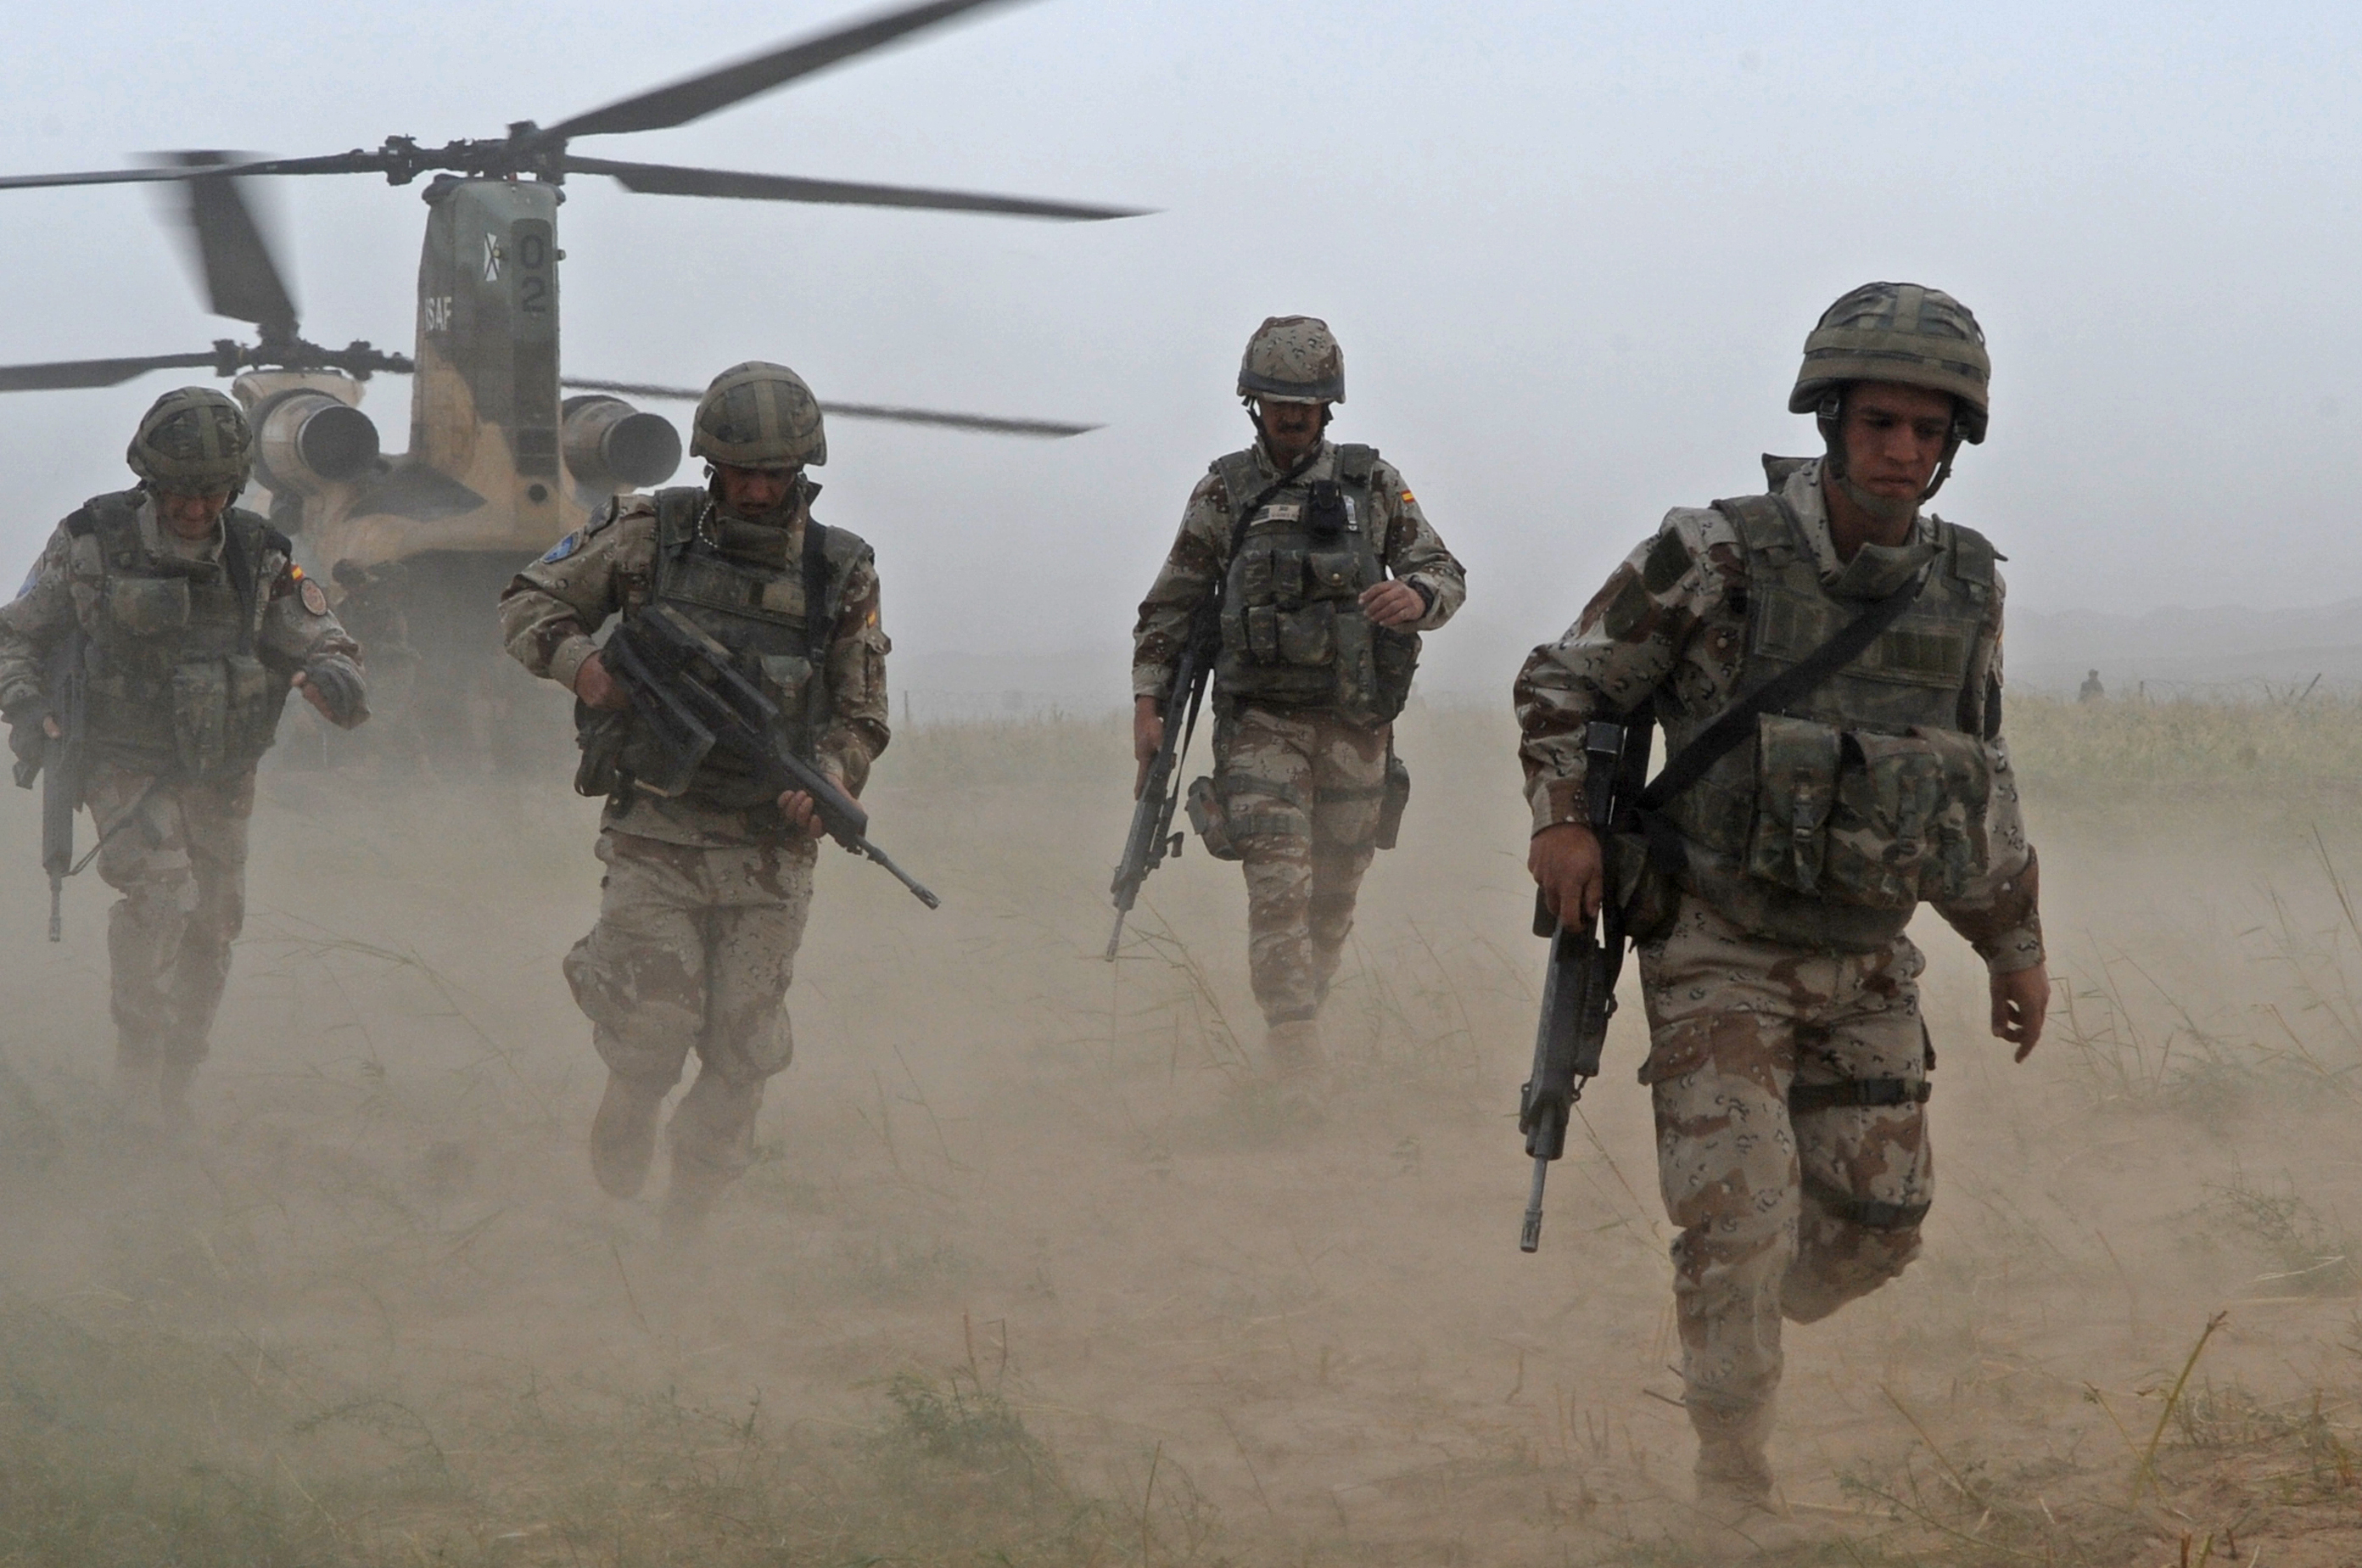 Spanish army paratroopers from the 3rd Bandera exit a CH-47 Chinook helicopter at Bala Murghab Forward Operating Base Afghanistan